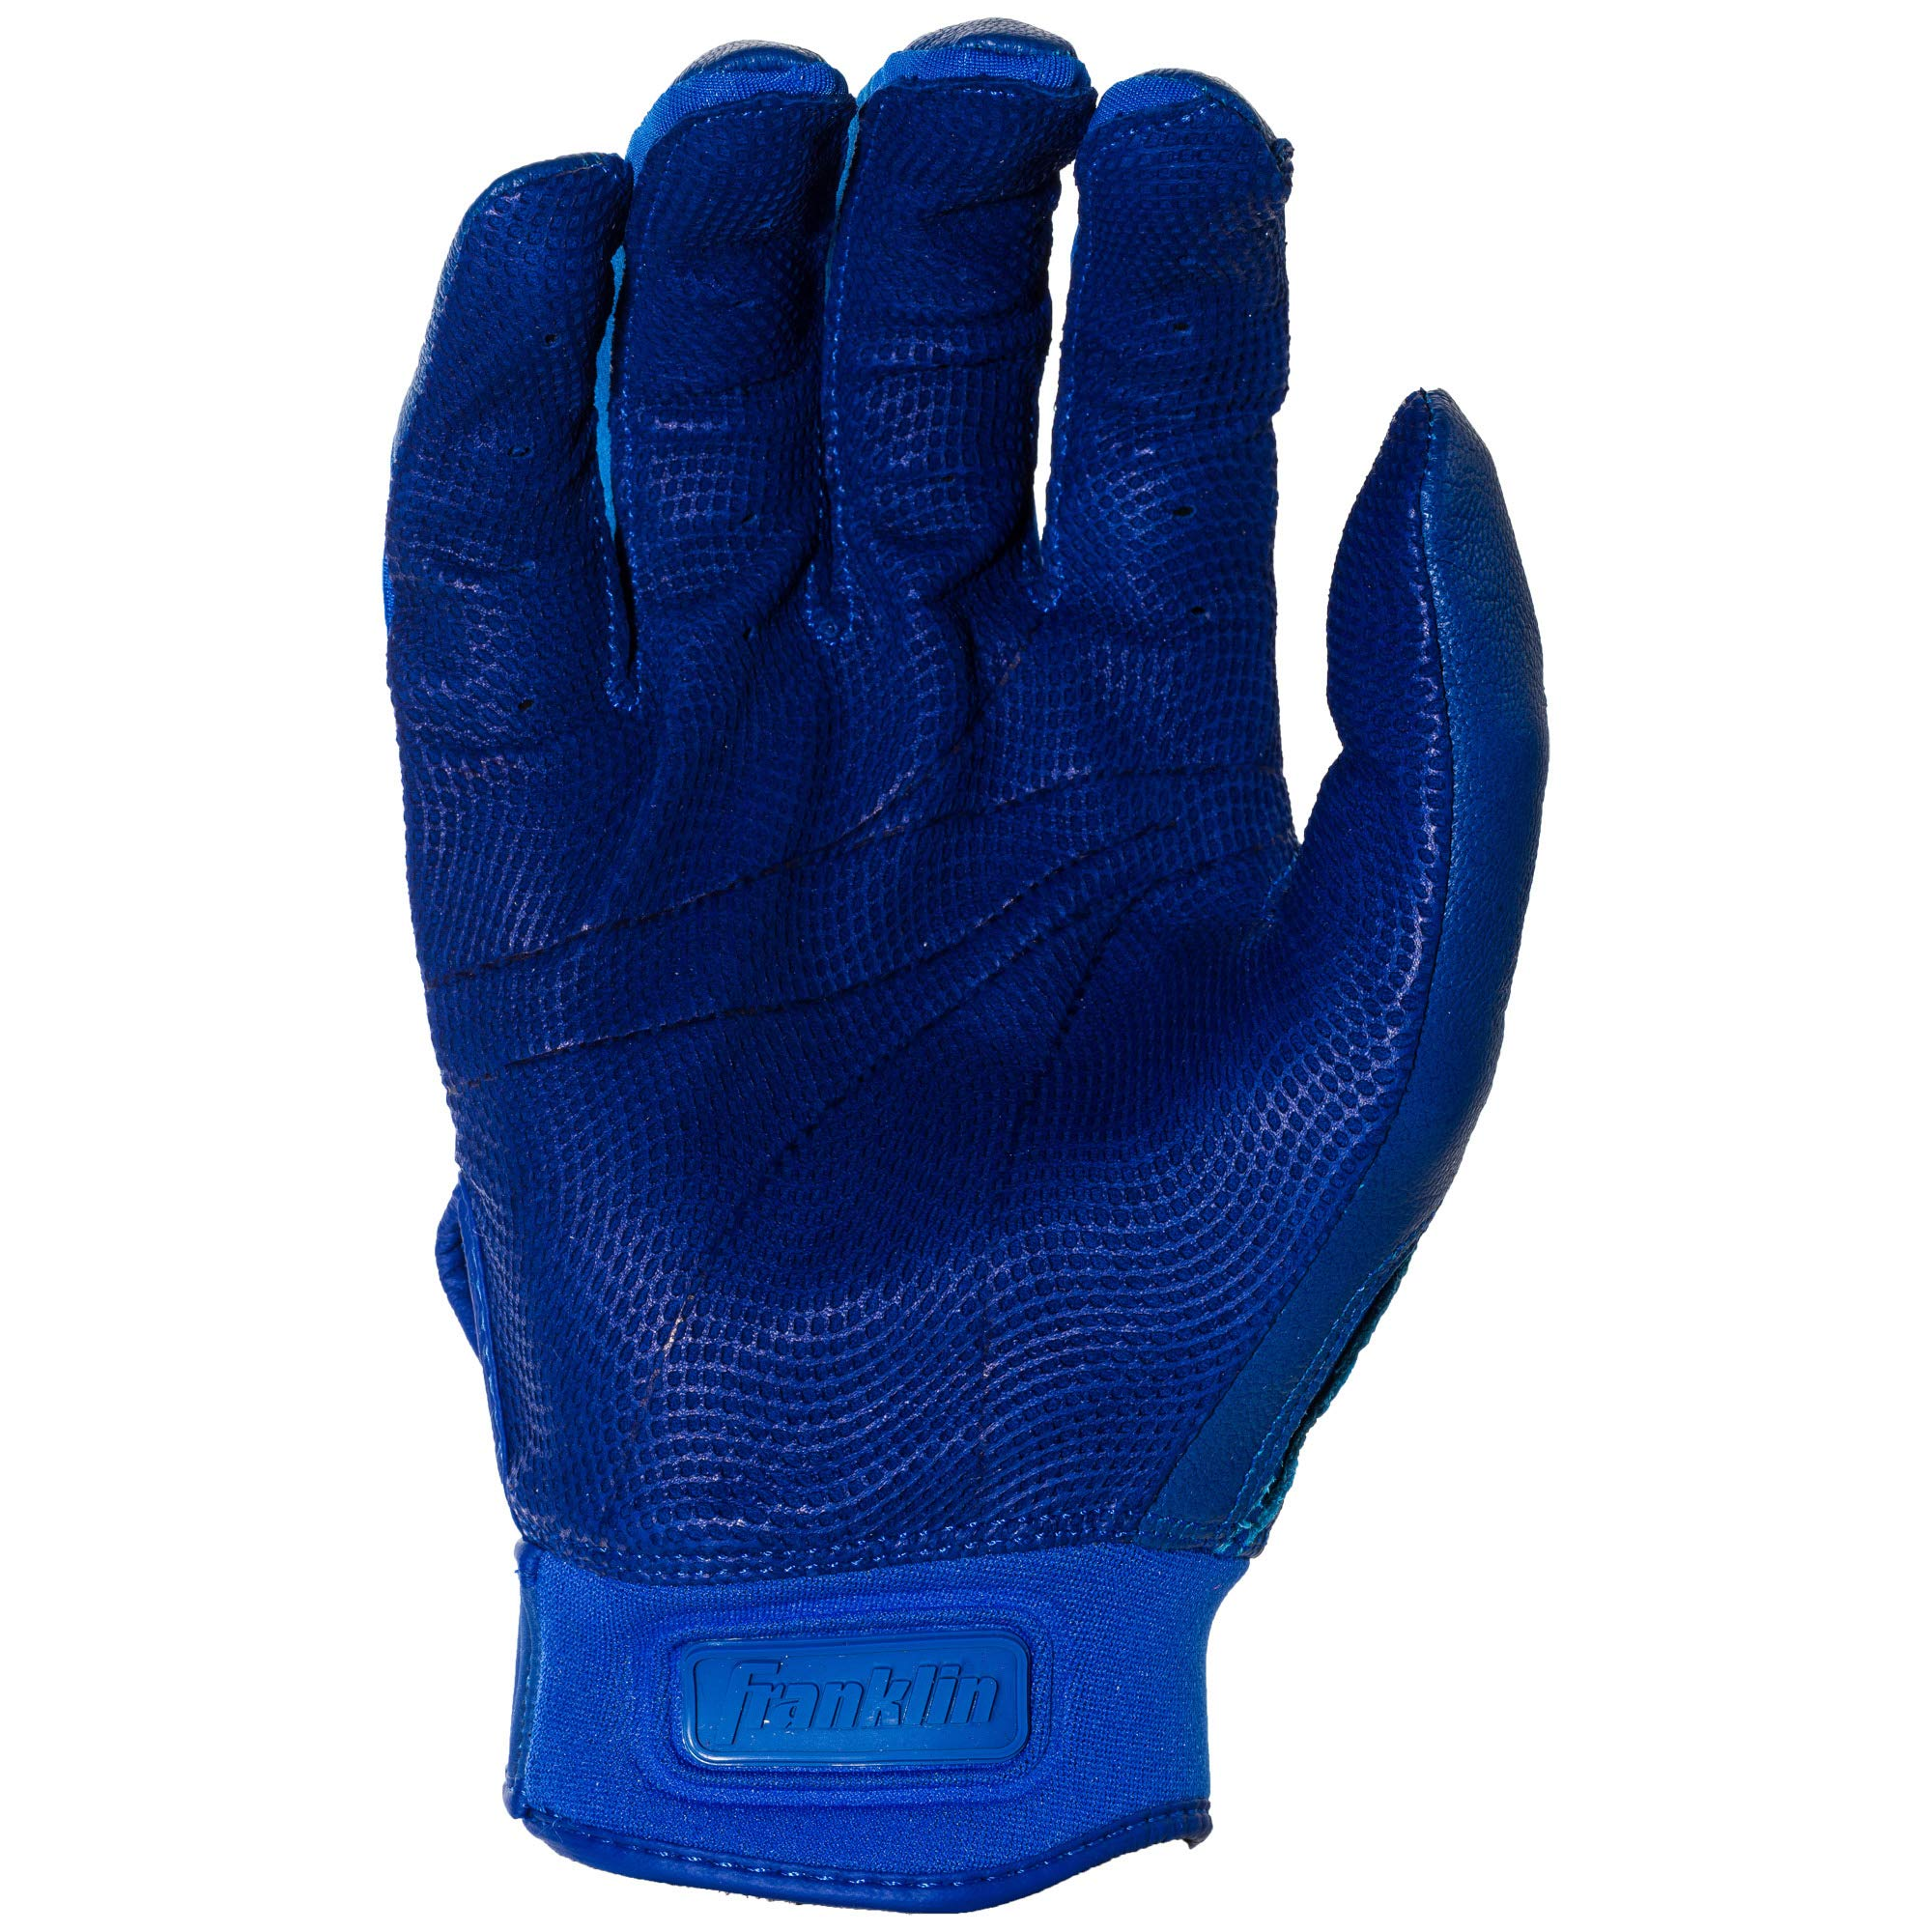 Franklin Sports CFX Pro Full Color Chrome Batting Gloves - Royal - Adult Small by Franklin Sports (Image #3)